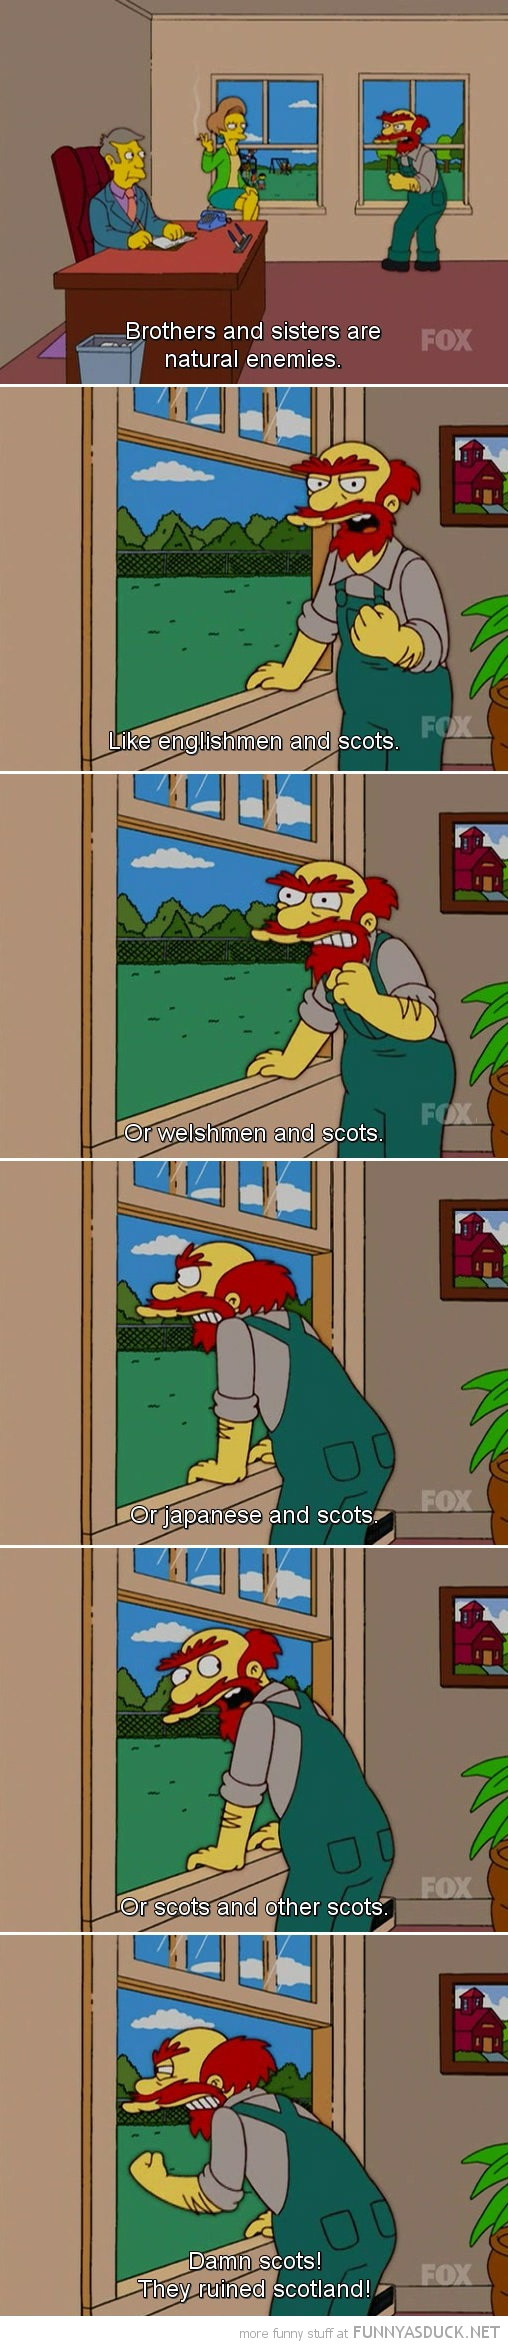 willie simpsons tv scene damn scots ruined scotland funny pics pictures pic picture image photo images photos lol